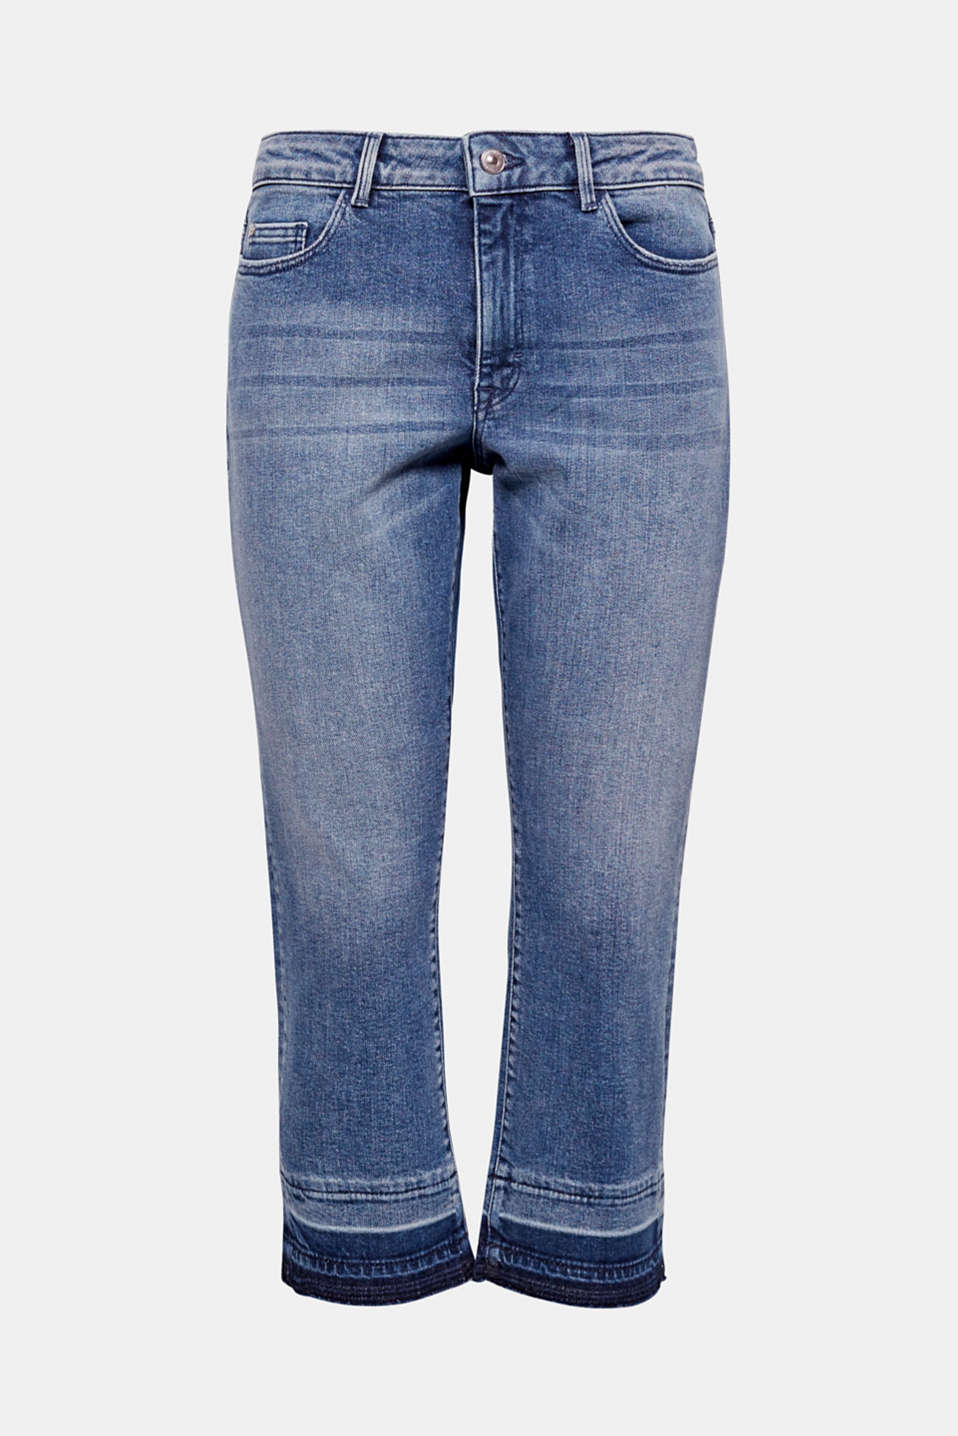 These slightly stretchy ankle-length jeans with a let-out hem in a casual garment-washed look exude casual coolness.